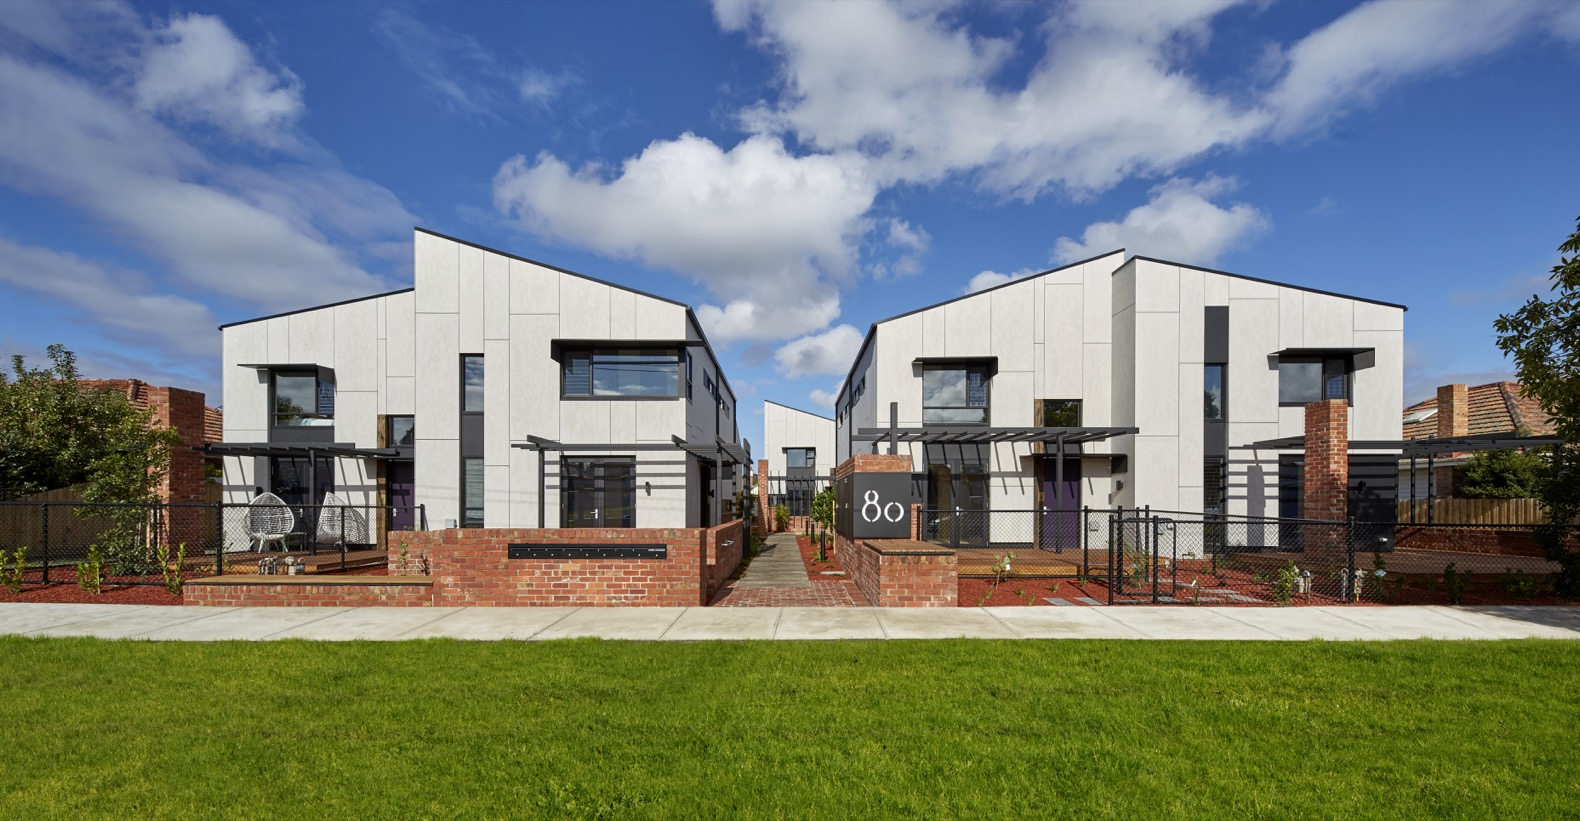 Clyde Mews eco-village champions sustainable housing alternatives in Melbourne